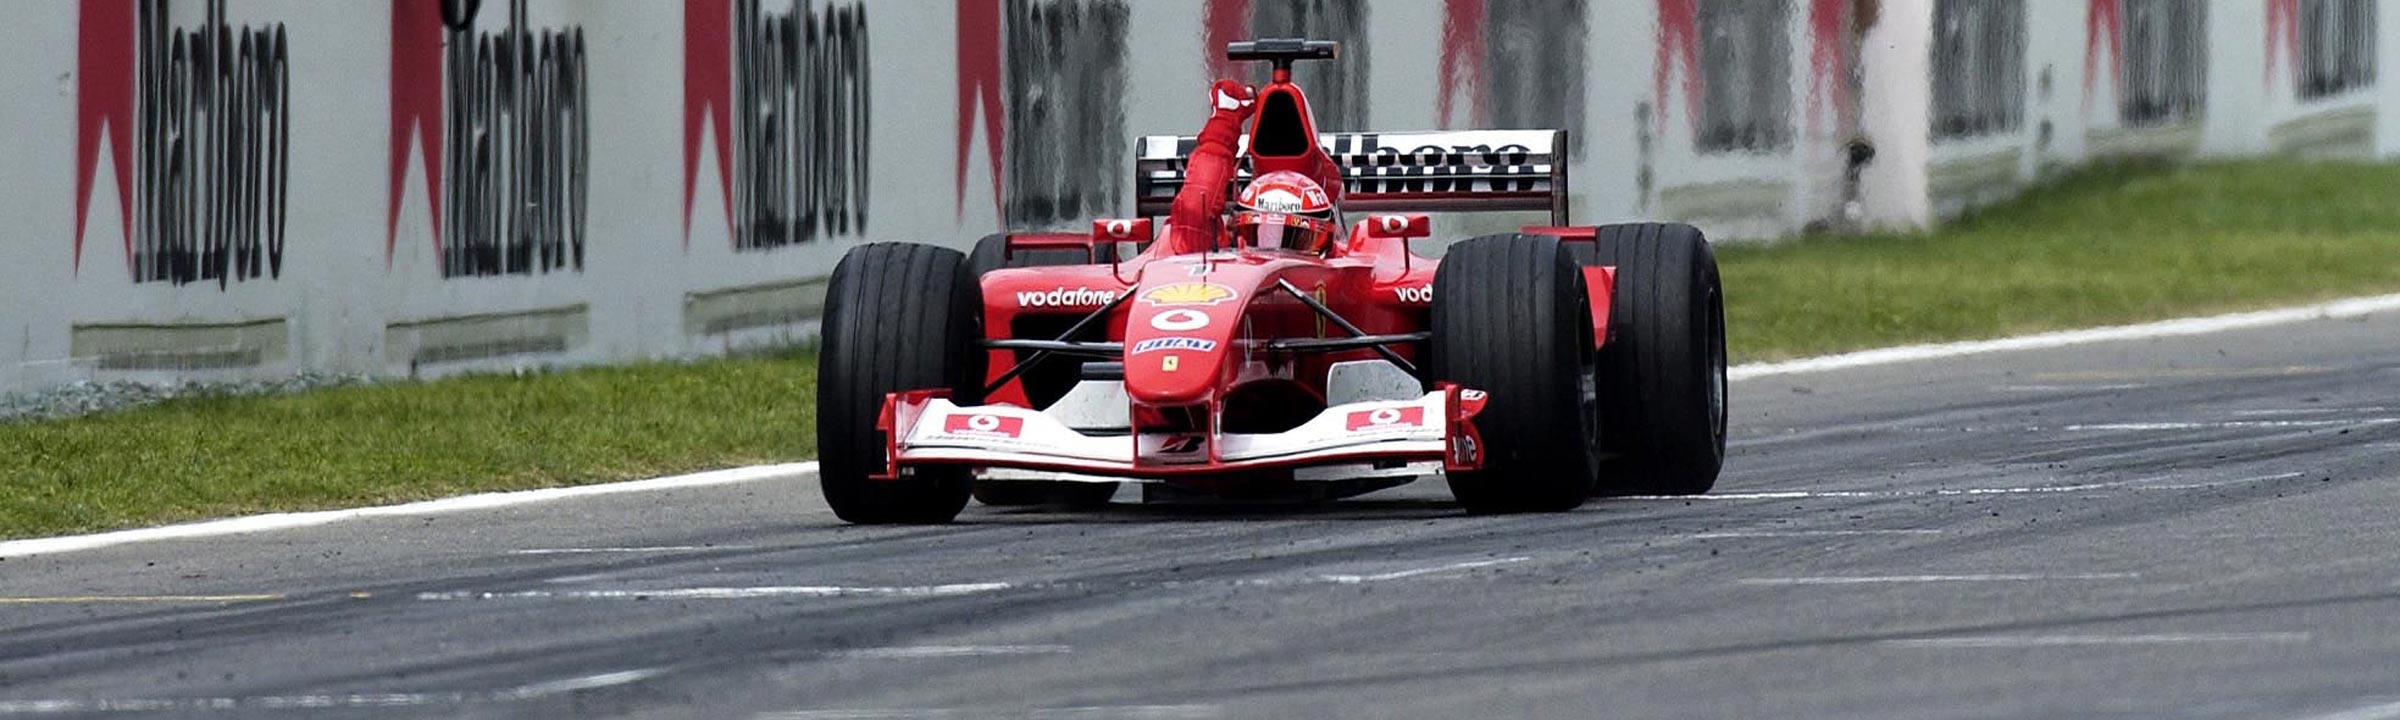 reflections-on-michael-schumacher